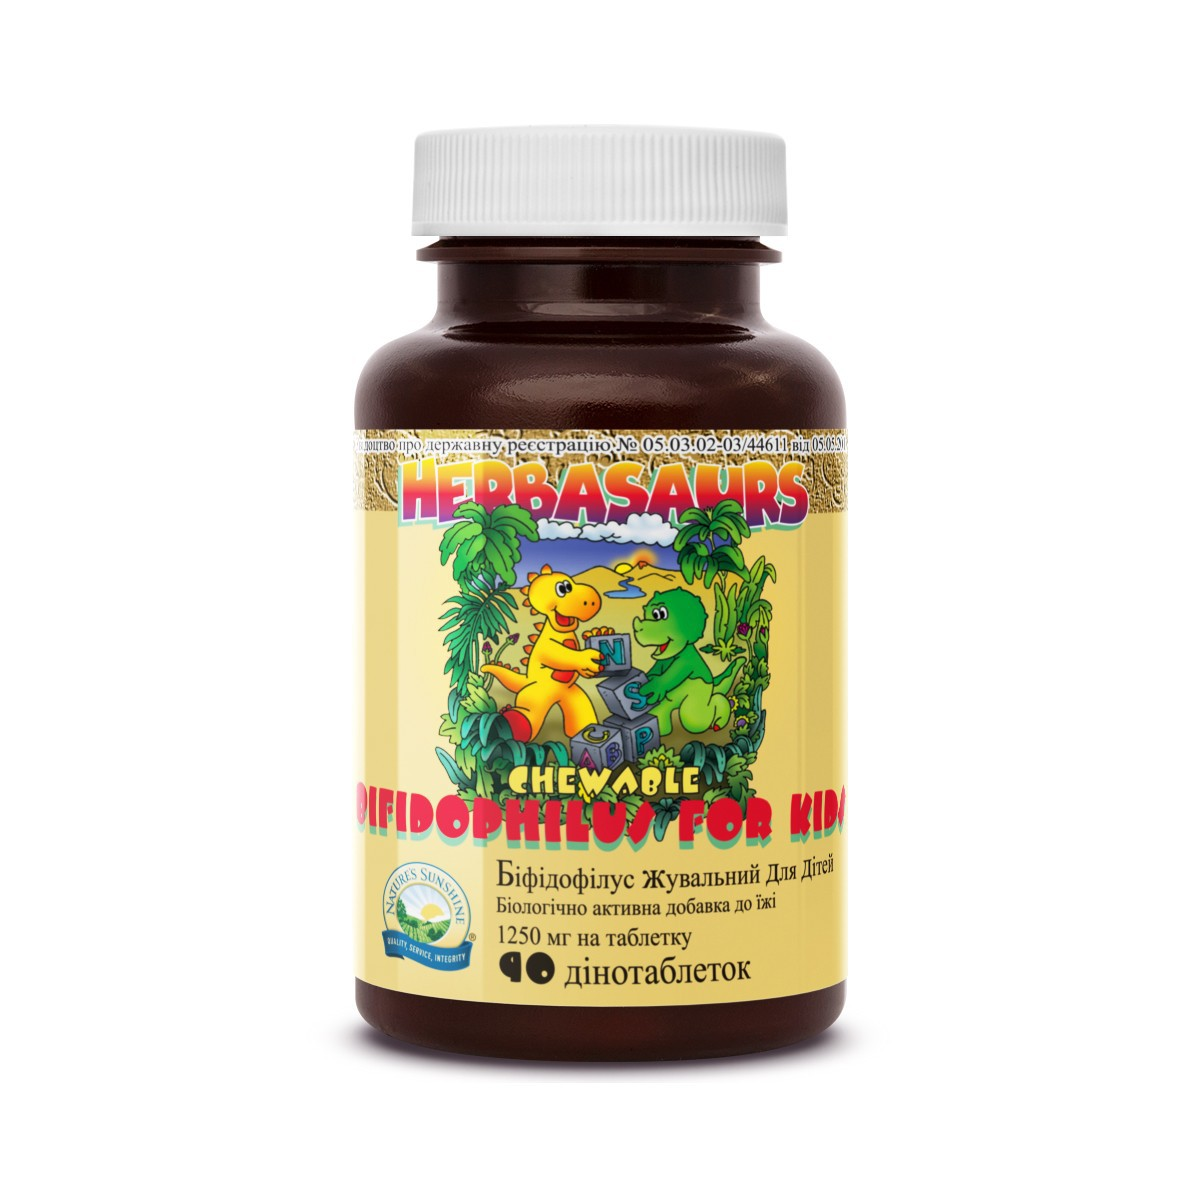 Bifidophilus Chewable for Kids - Herbasaurs [3302] (-20%)